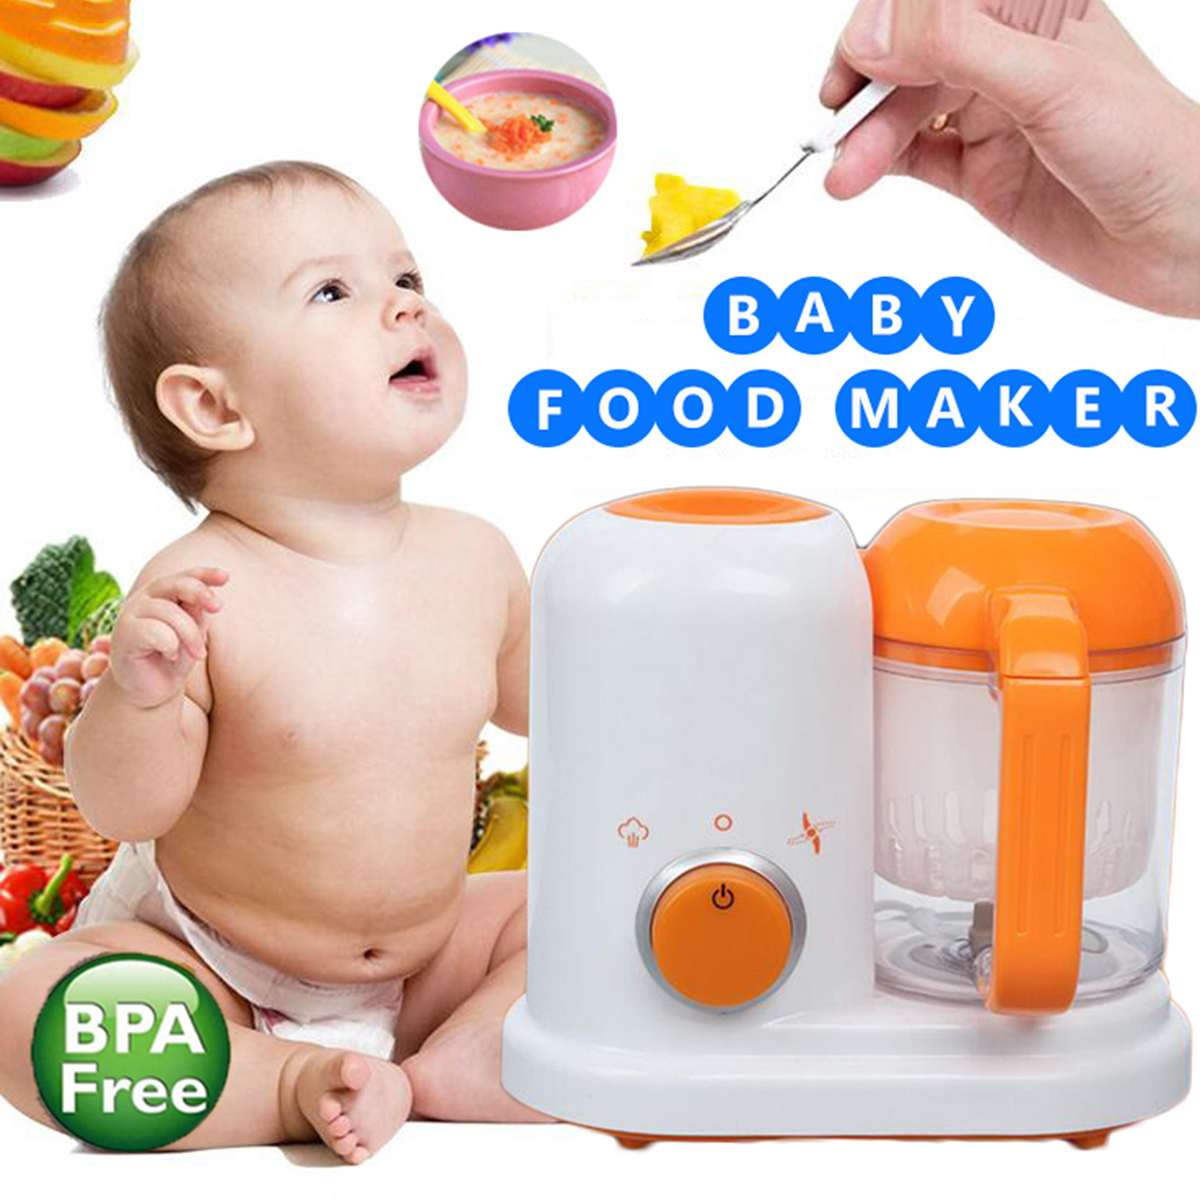 AC 200-250V Electric Baby Food Maker Toddler Blenders Steamer Processor BPA Free All In One Food-Graded PP EU Steam Food SafeAC 200-250V Electric Baby Food Maker Toddler Blenders Steamer Processor BPA Free All In One Food-Graded PP EU Steam Food Safe